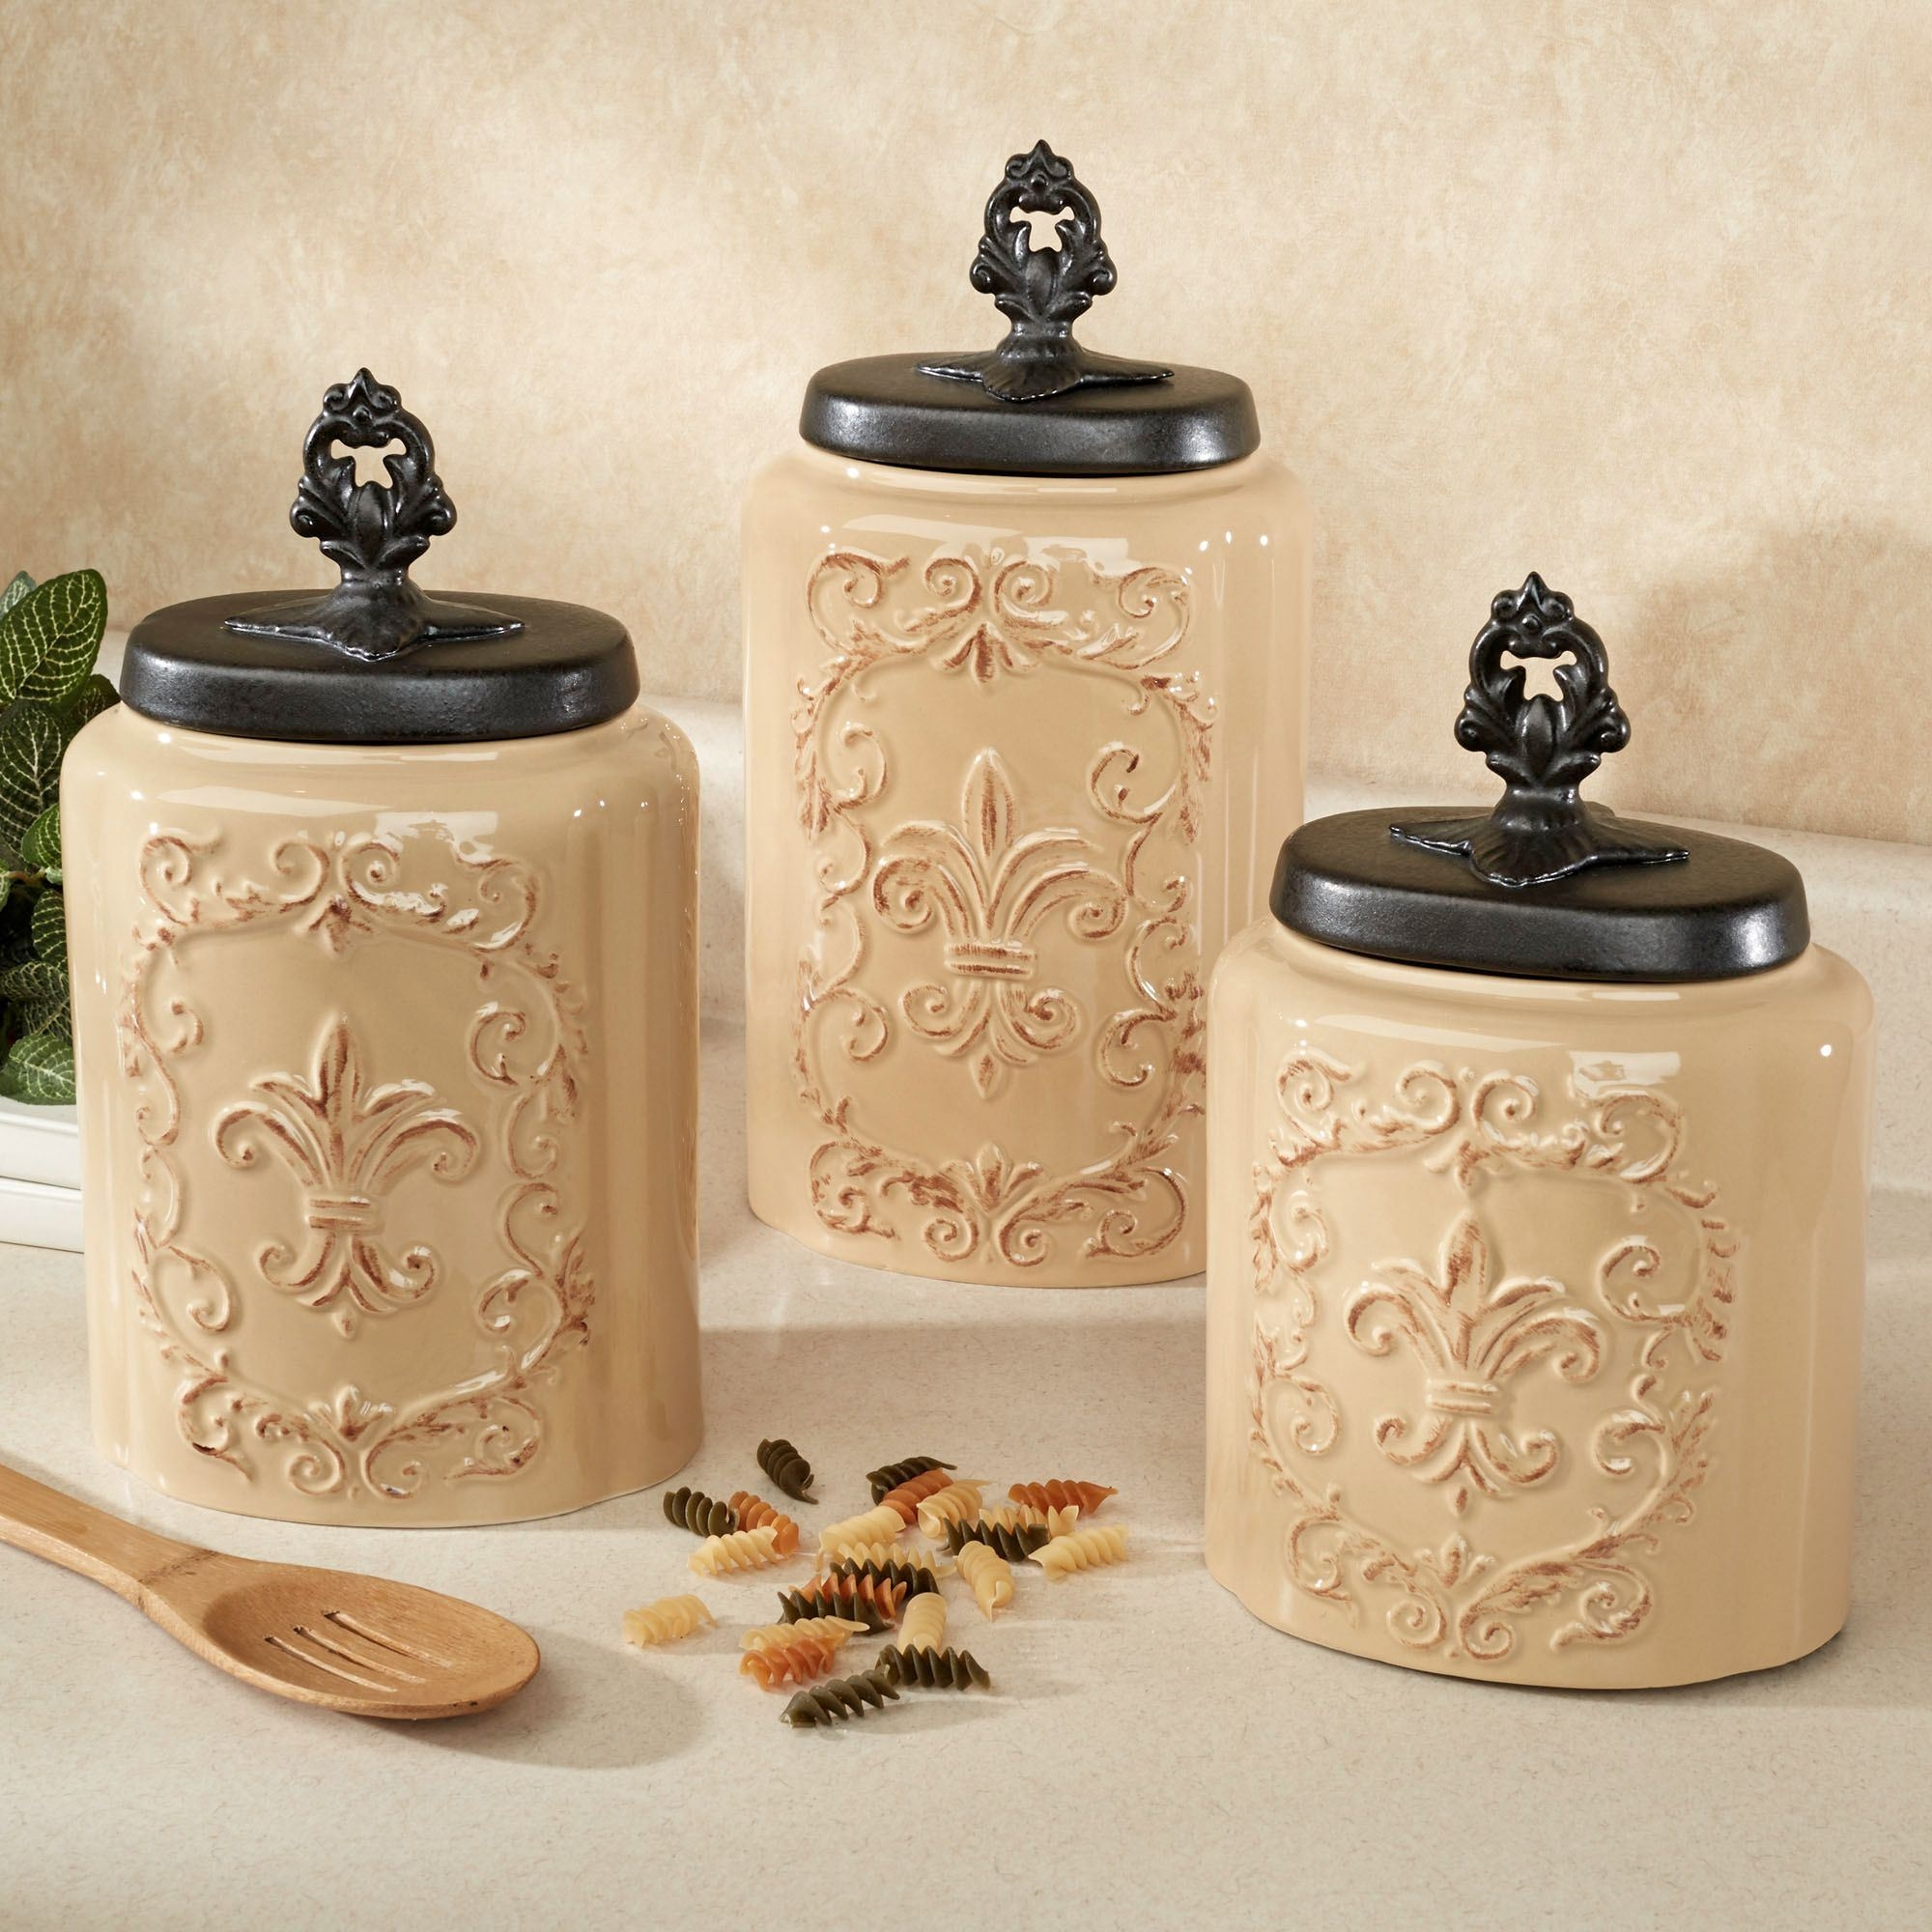 Permalink to Ceramic Kitchen Canister Sets